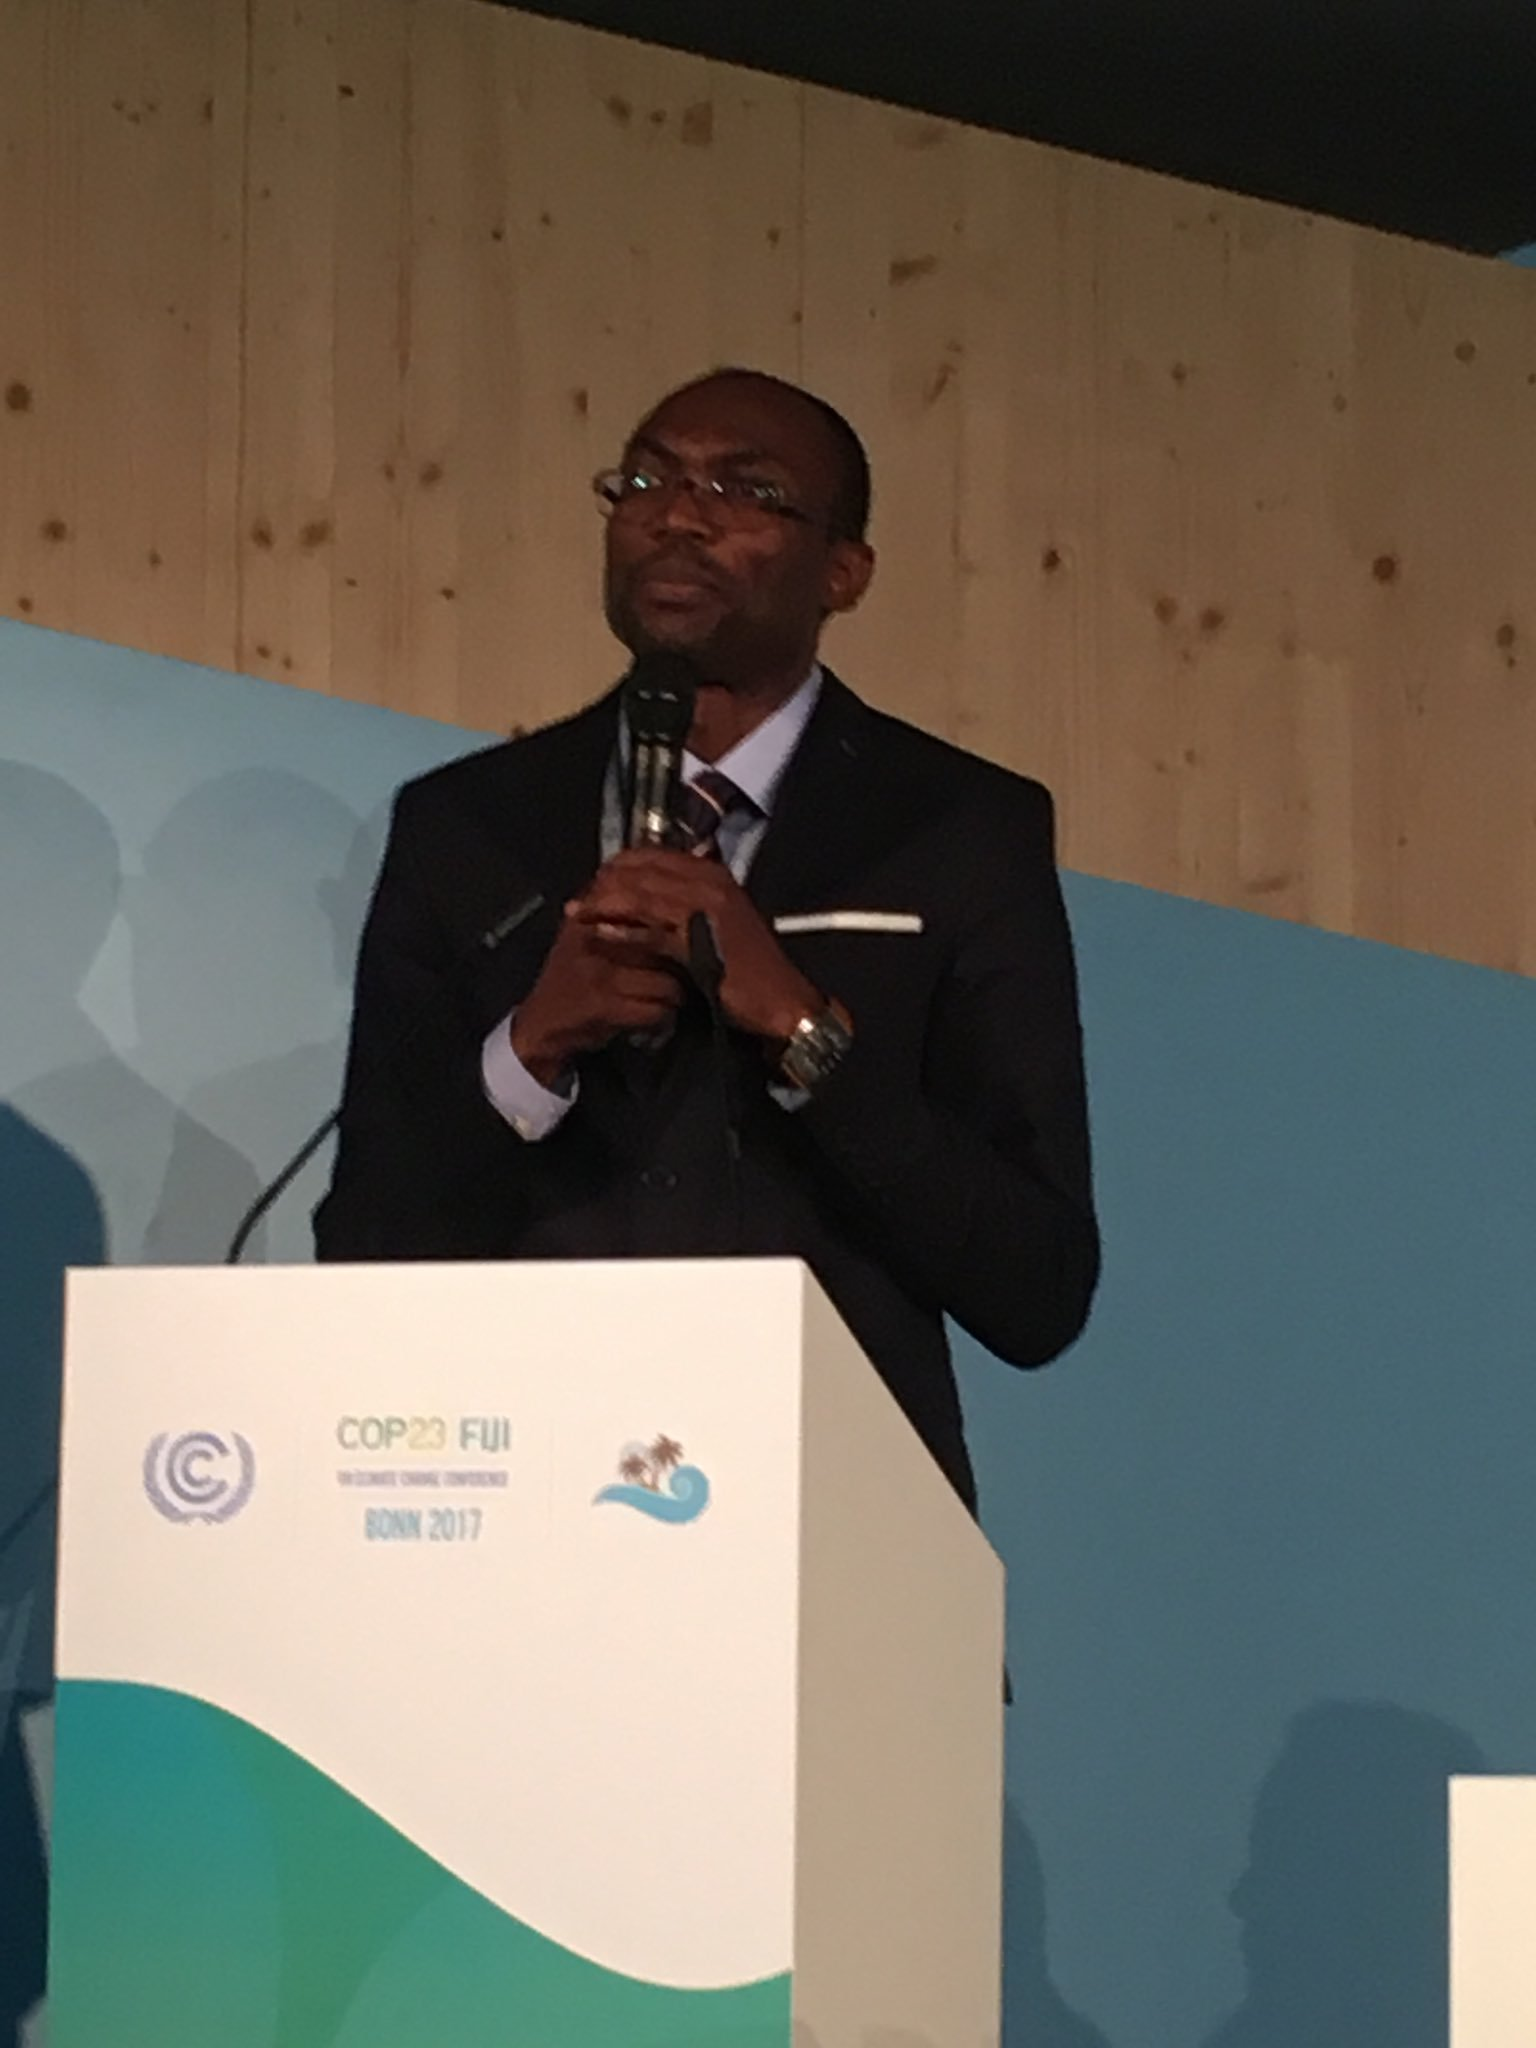 Pa Ousmane says @GCF looking to get funds to local level through enhanced direct access & improving systems 2get #moneywhereitmatters @cop23 https://t.co/Sj0ZlxHe7j